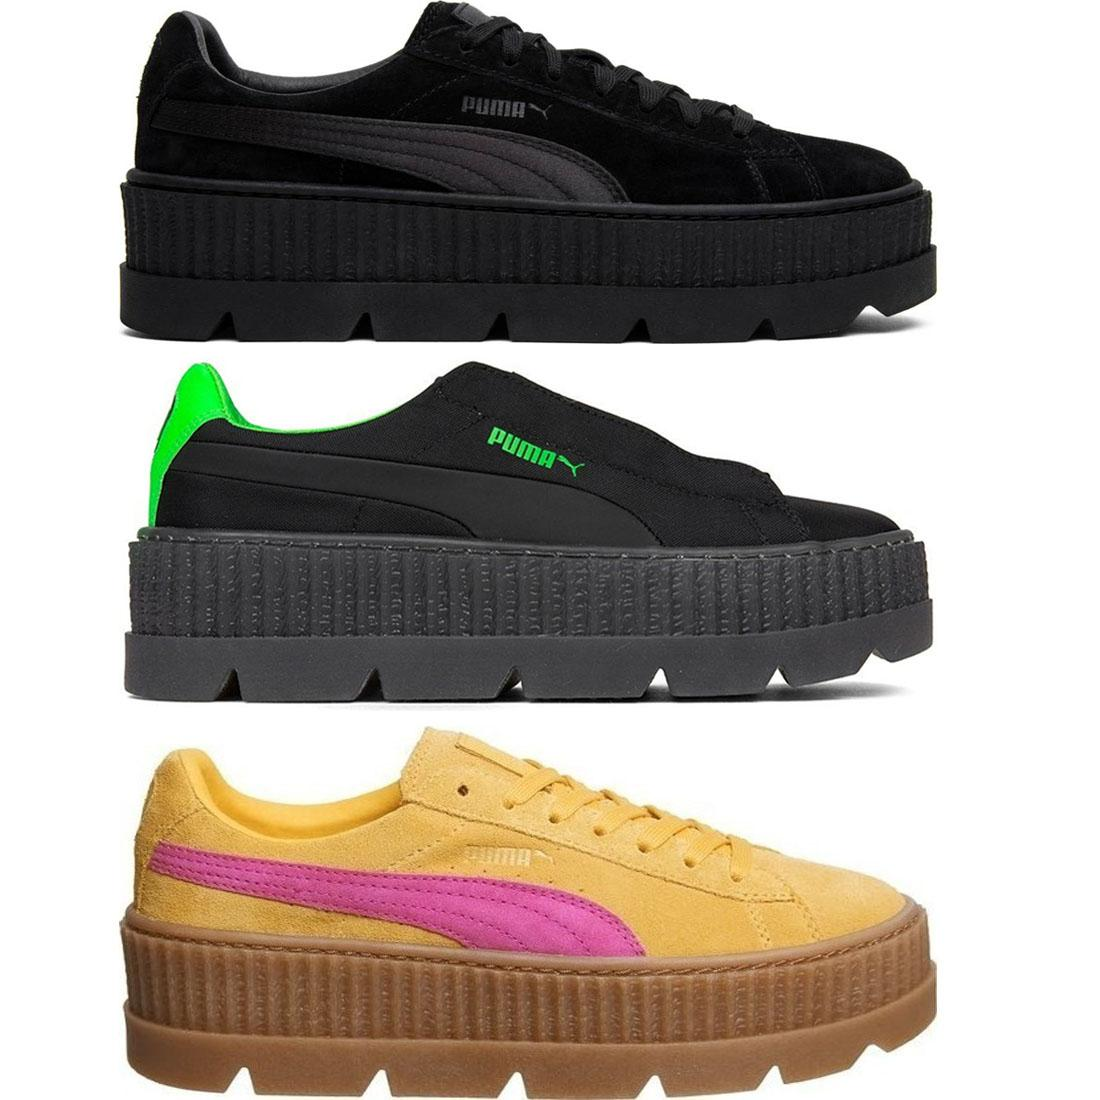 buy popular 9f440 f313e Details about PUMA Fenty X Rihanna Cleated Creeper Ladies Suede Black Green  Yellow Trainers